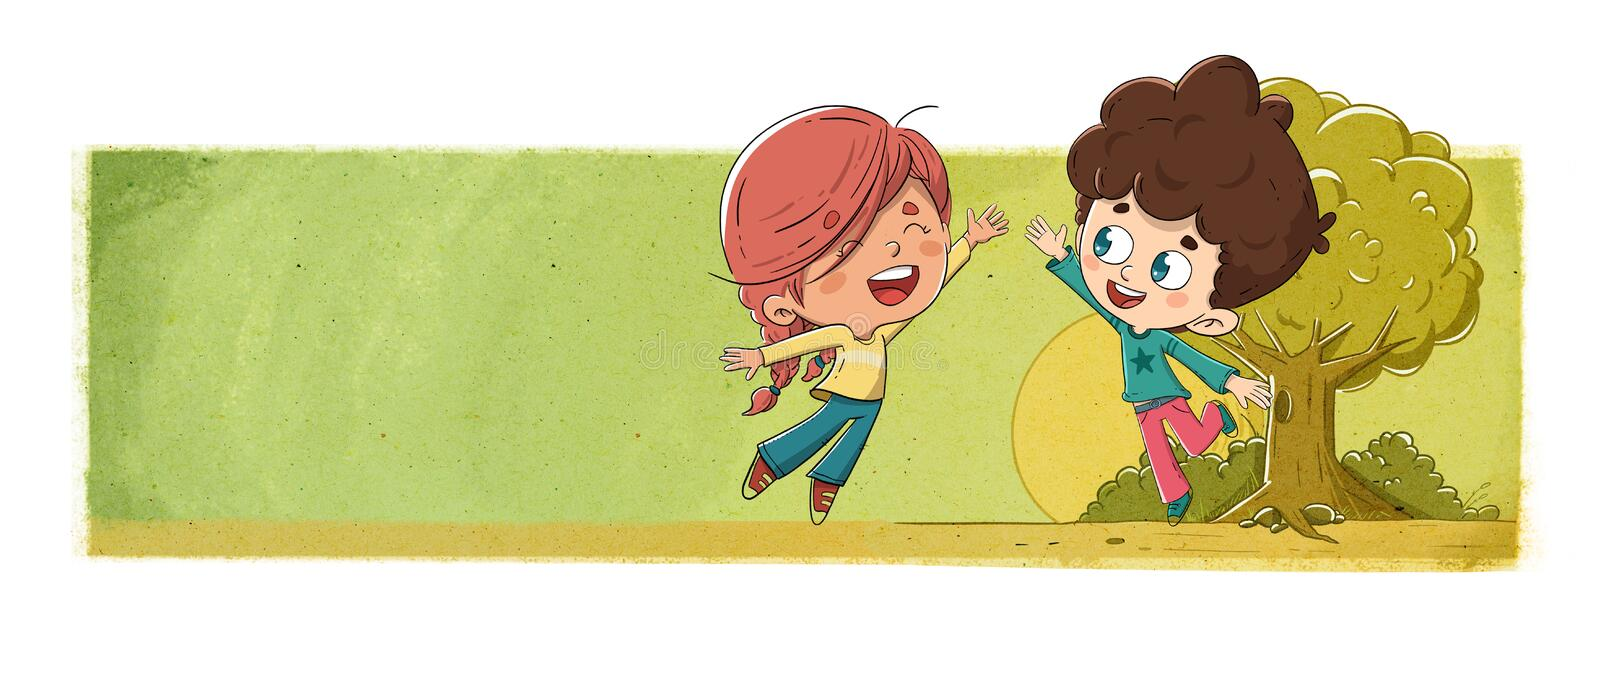 Children playing in the park crashing the hand royalty free illustration